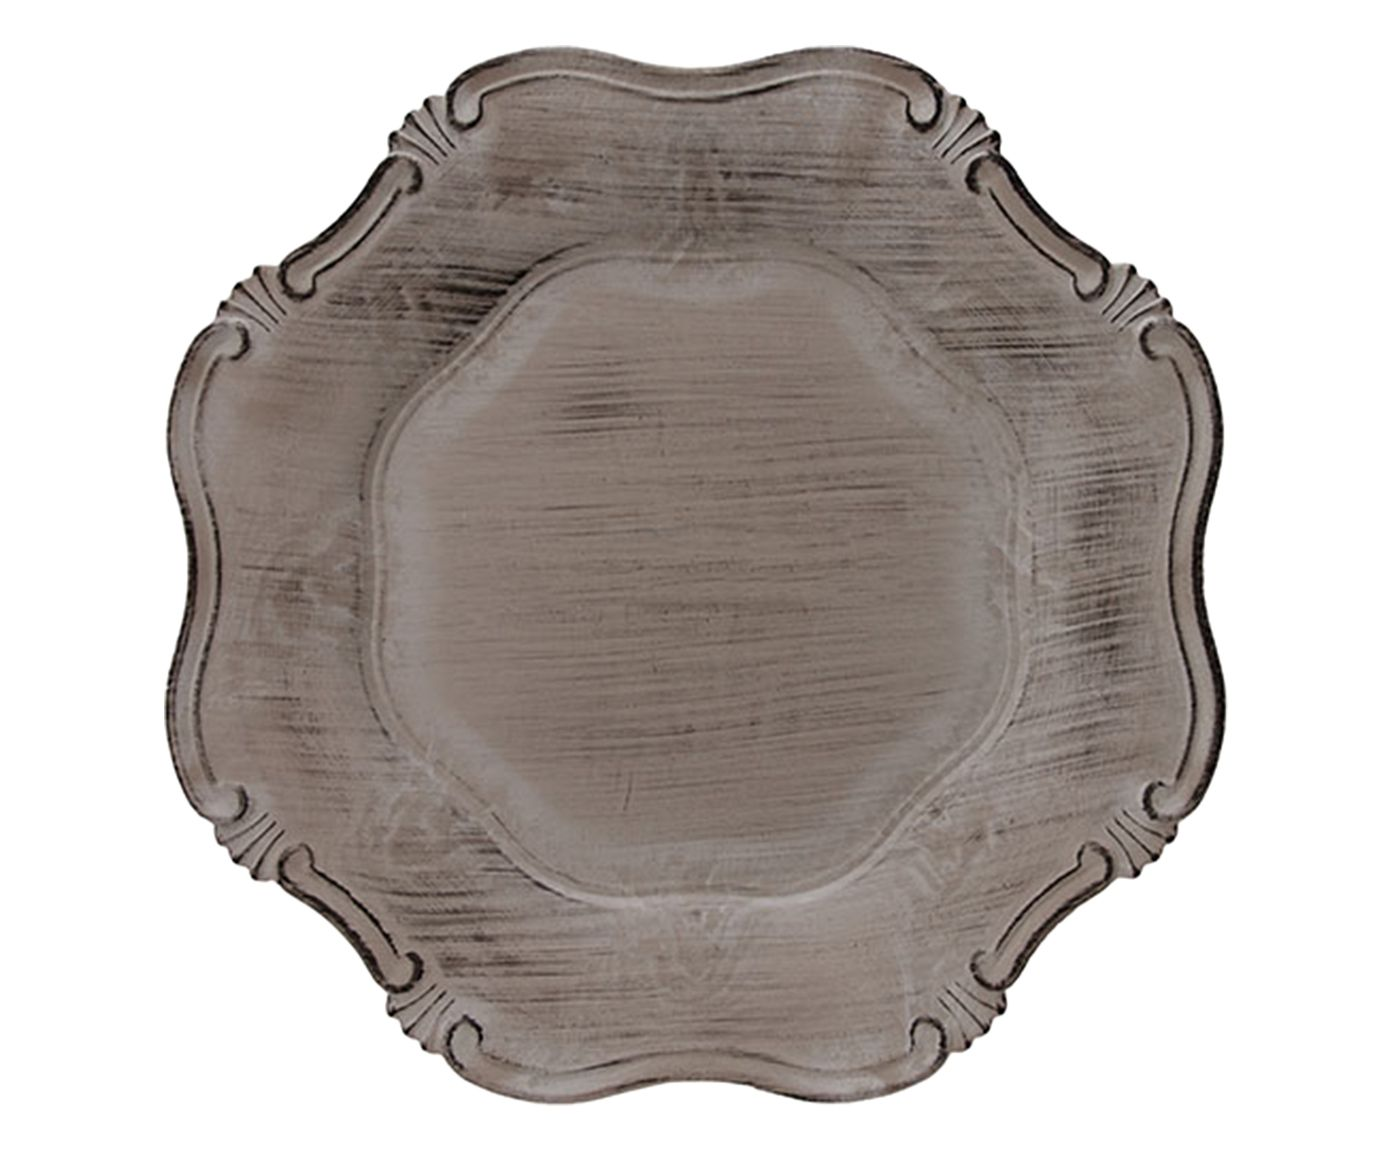 Sousplat Grego Corinto Taupe - 33cm | Westwing.com.br